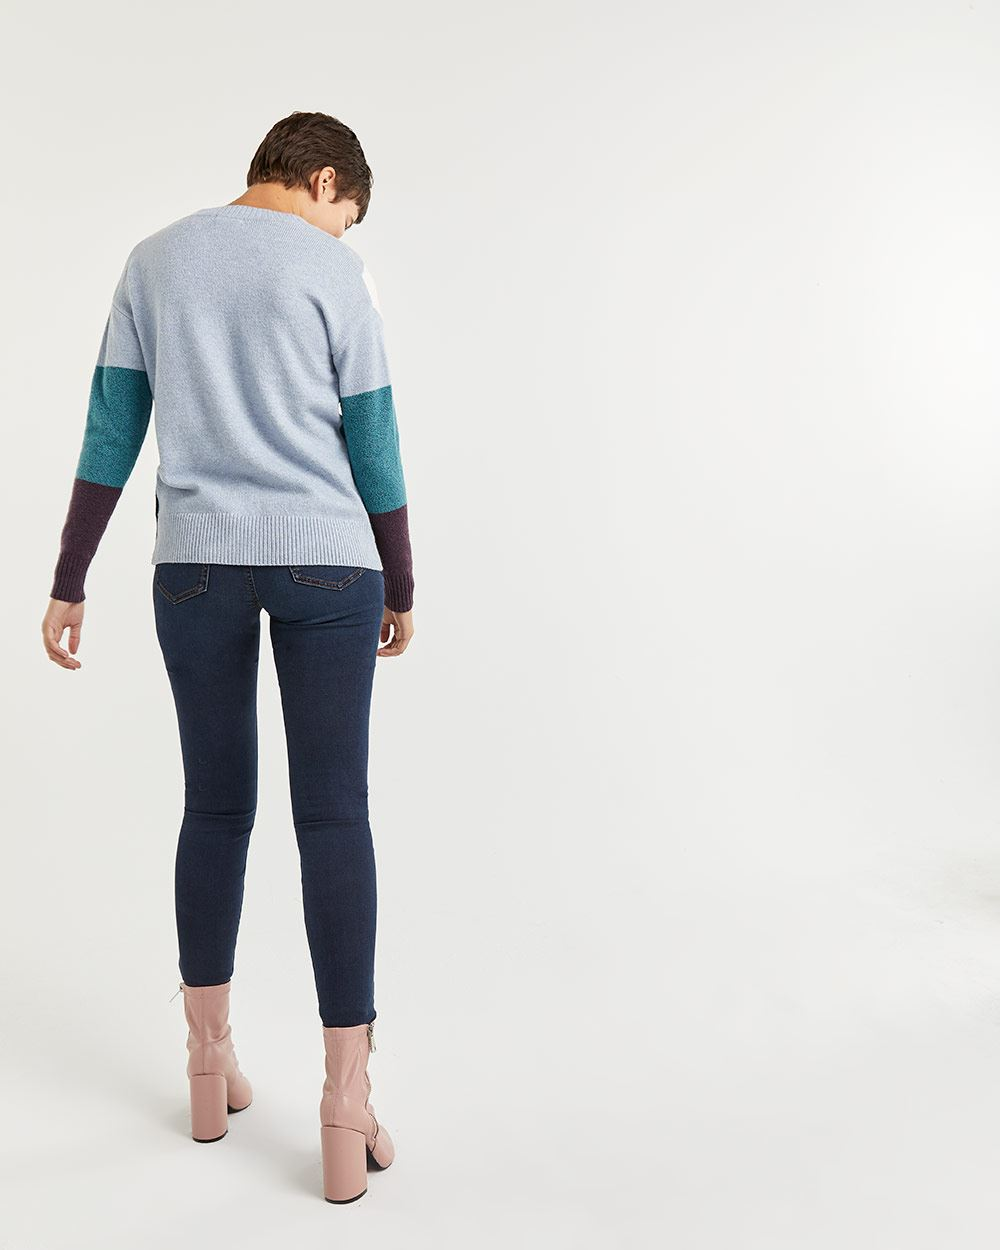 Scenery Pattern Sweater